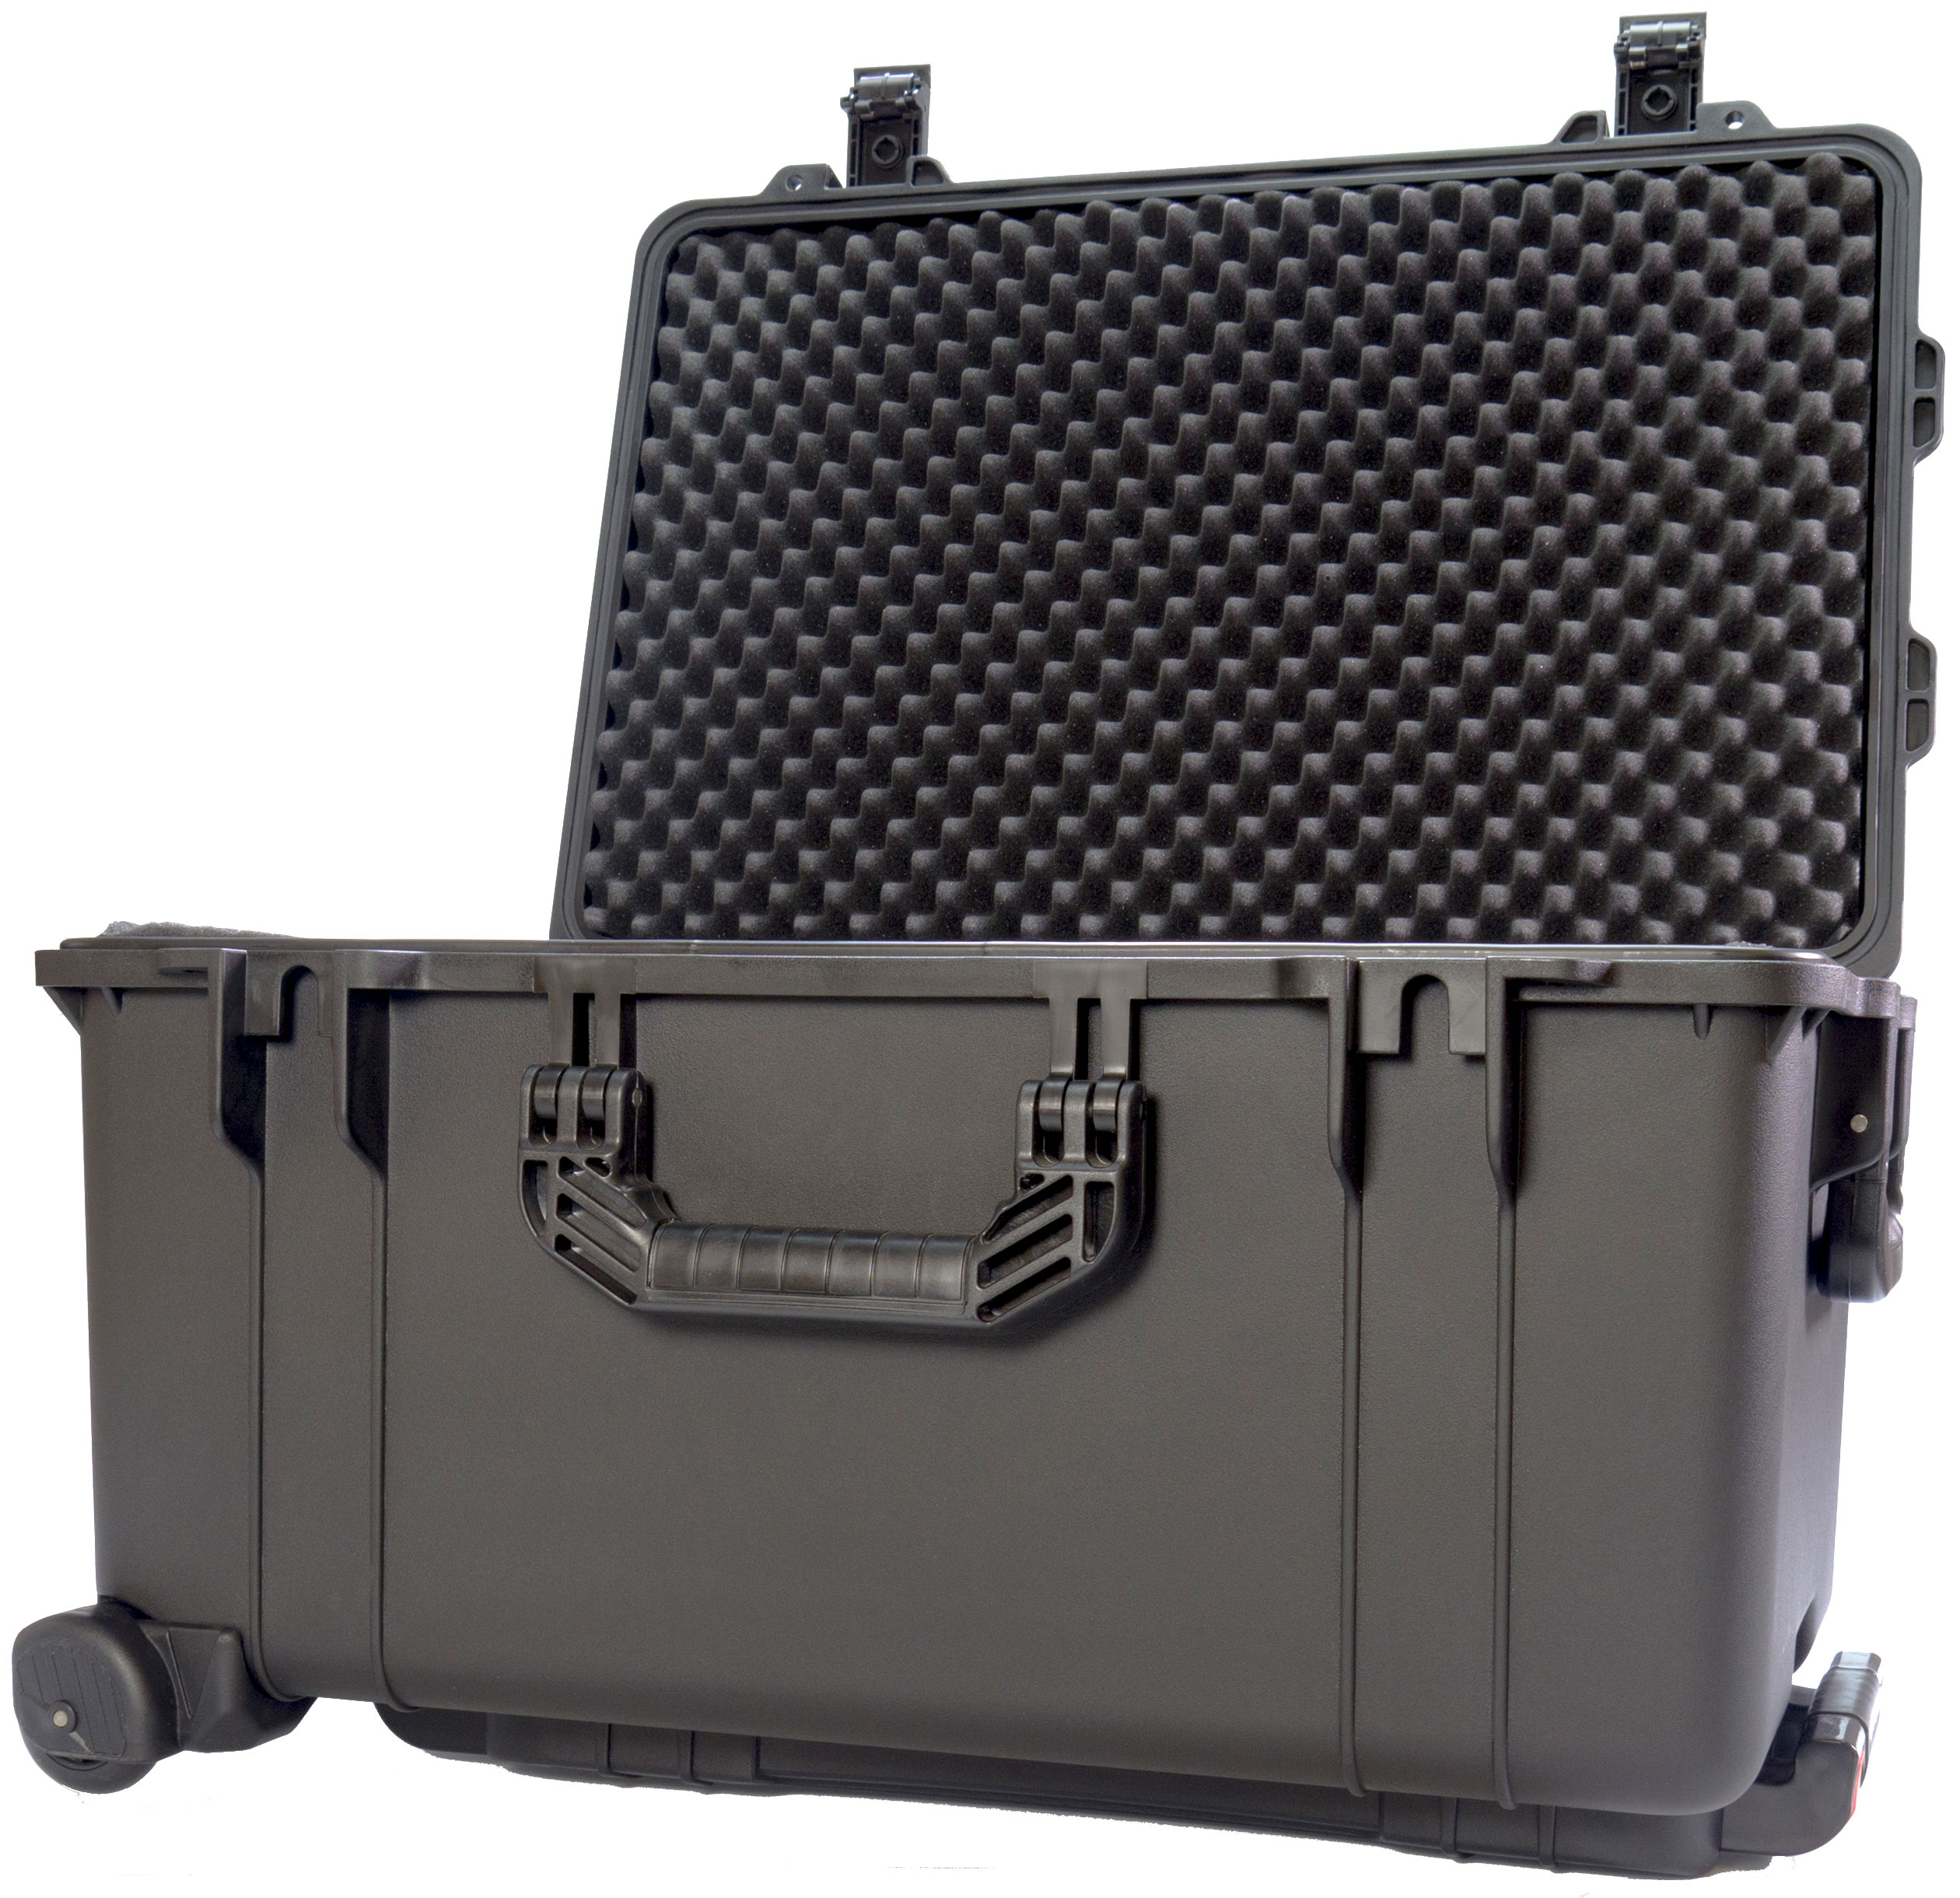 NEW datavideo BLD1601 (HS-1600T, three PTC-140T's and a sturdy rolling case for transport) - HC 800 open18022020055936